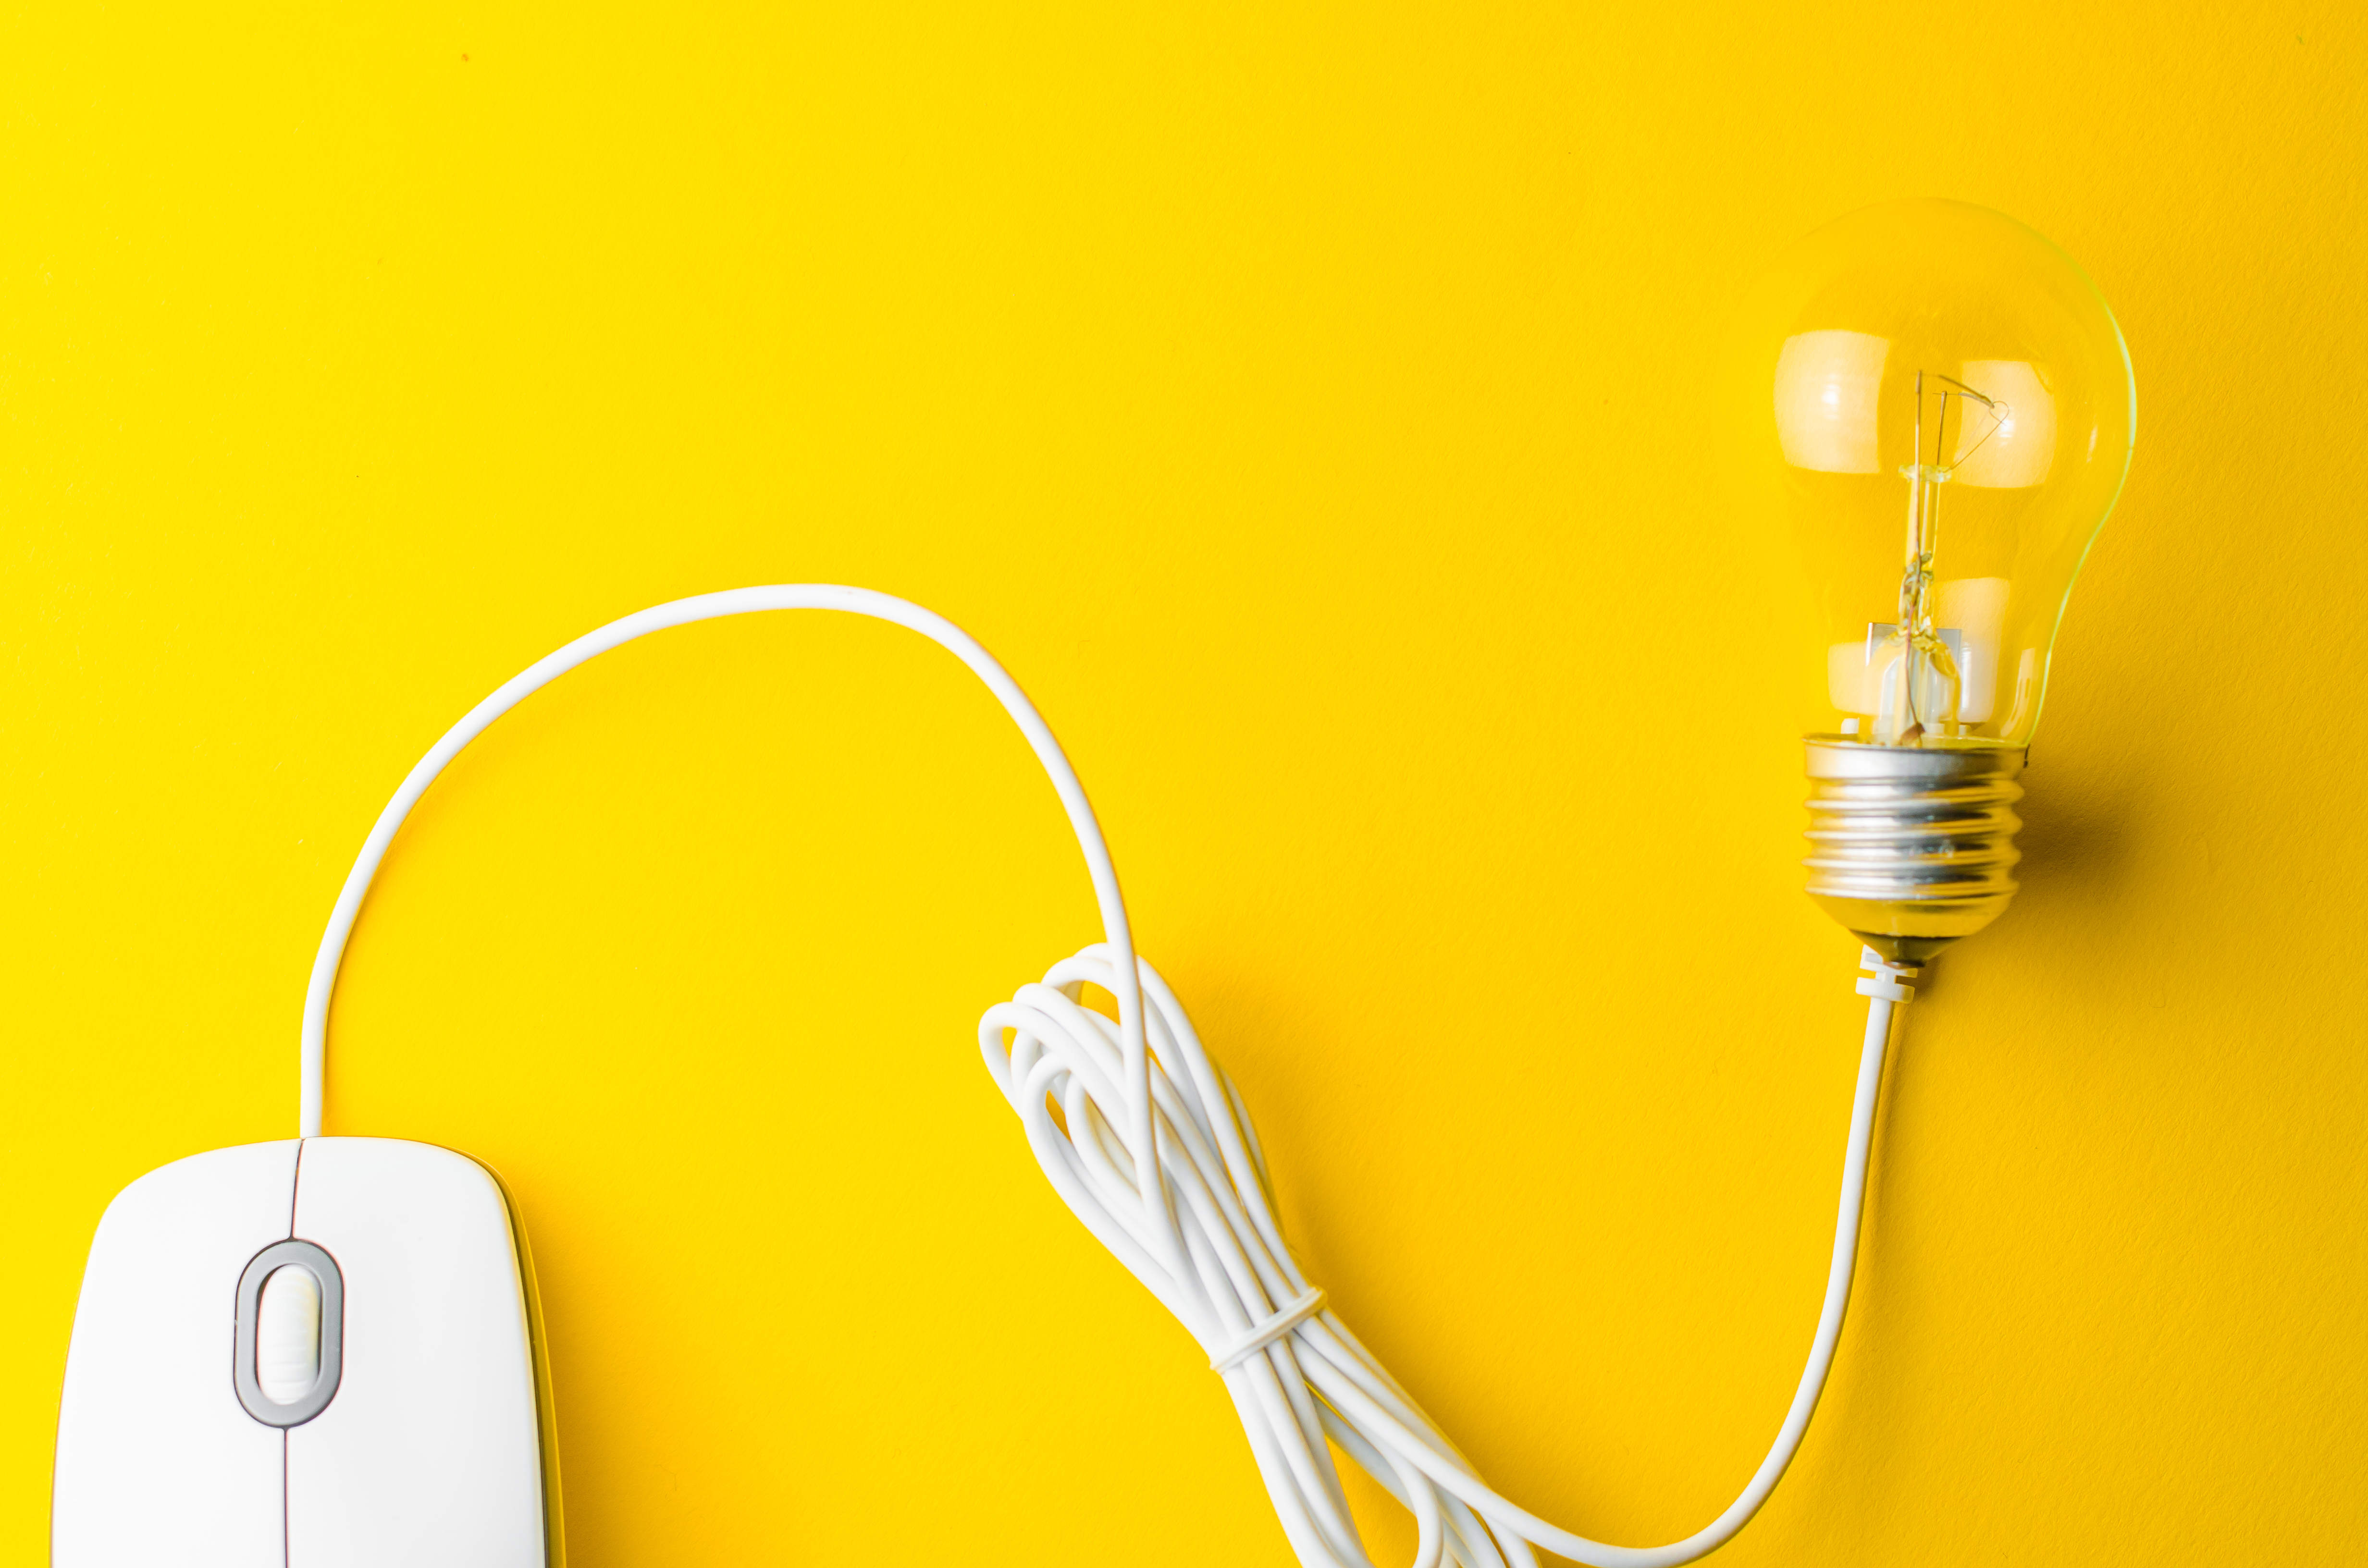 Mouse and Bulb.jpg